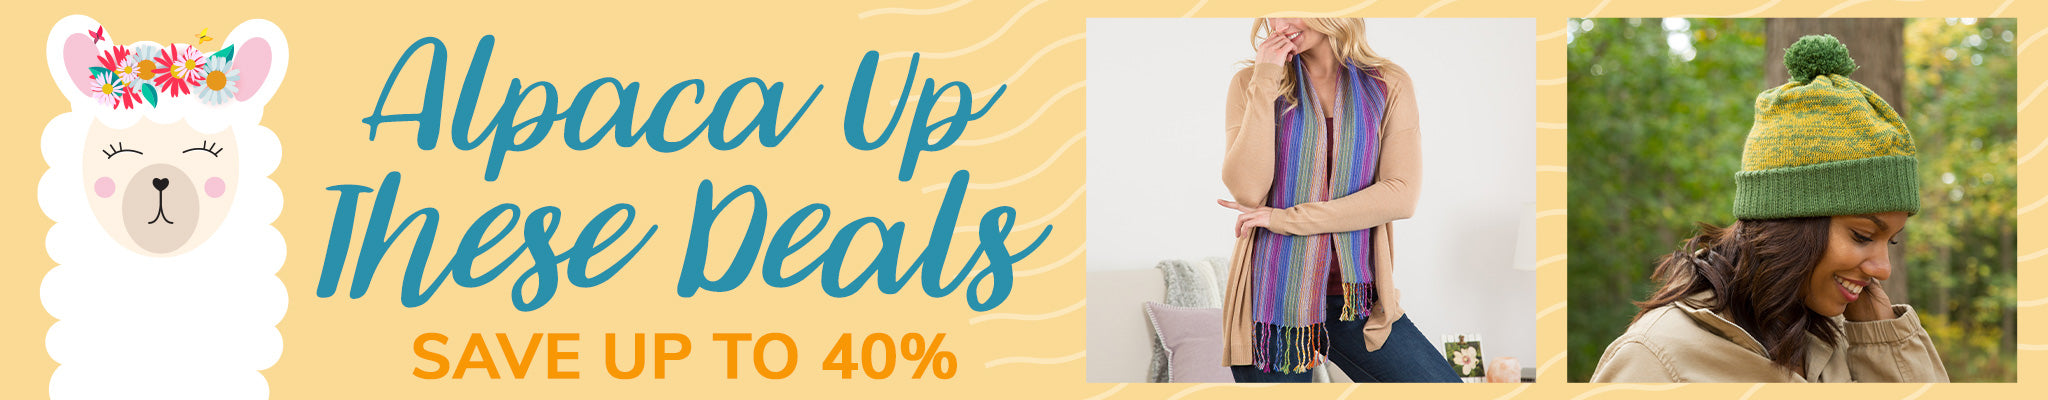 Alpaca Up These Deals | Save Up to 40%